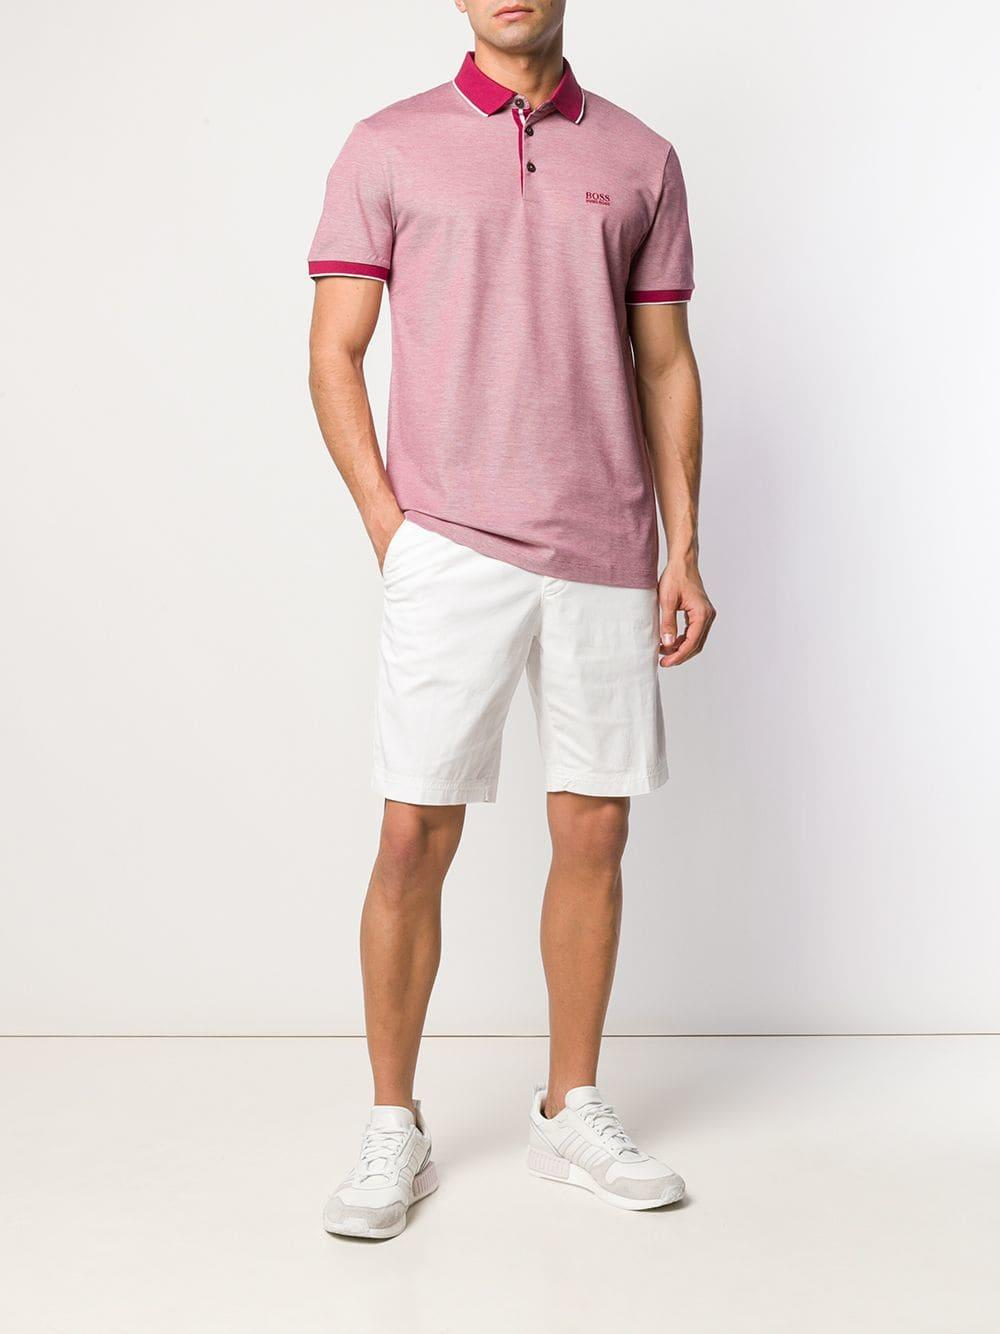 677a98dc BOSS Prout Polo Shirt in Pink for Men - Lyst